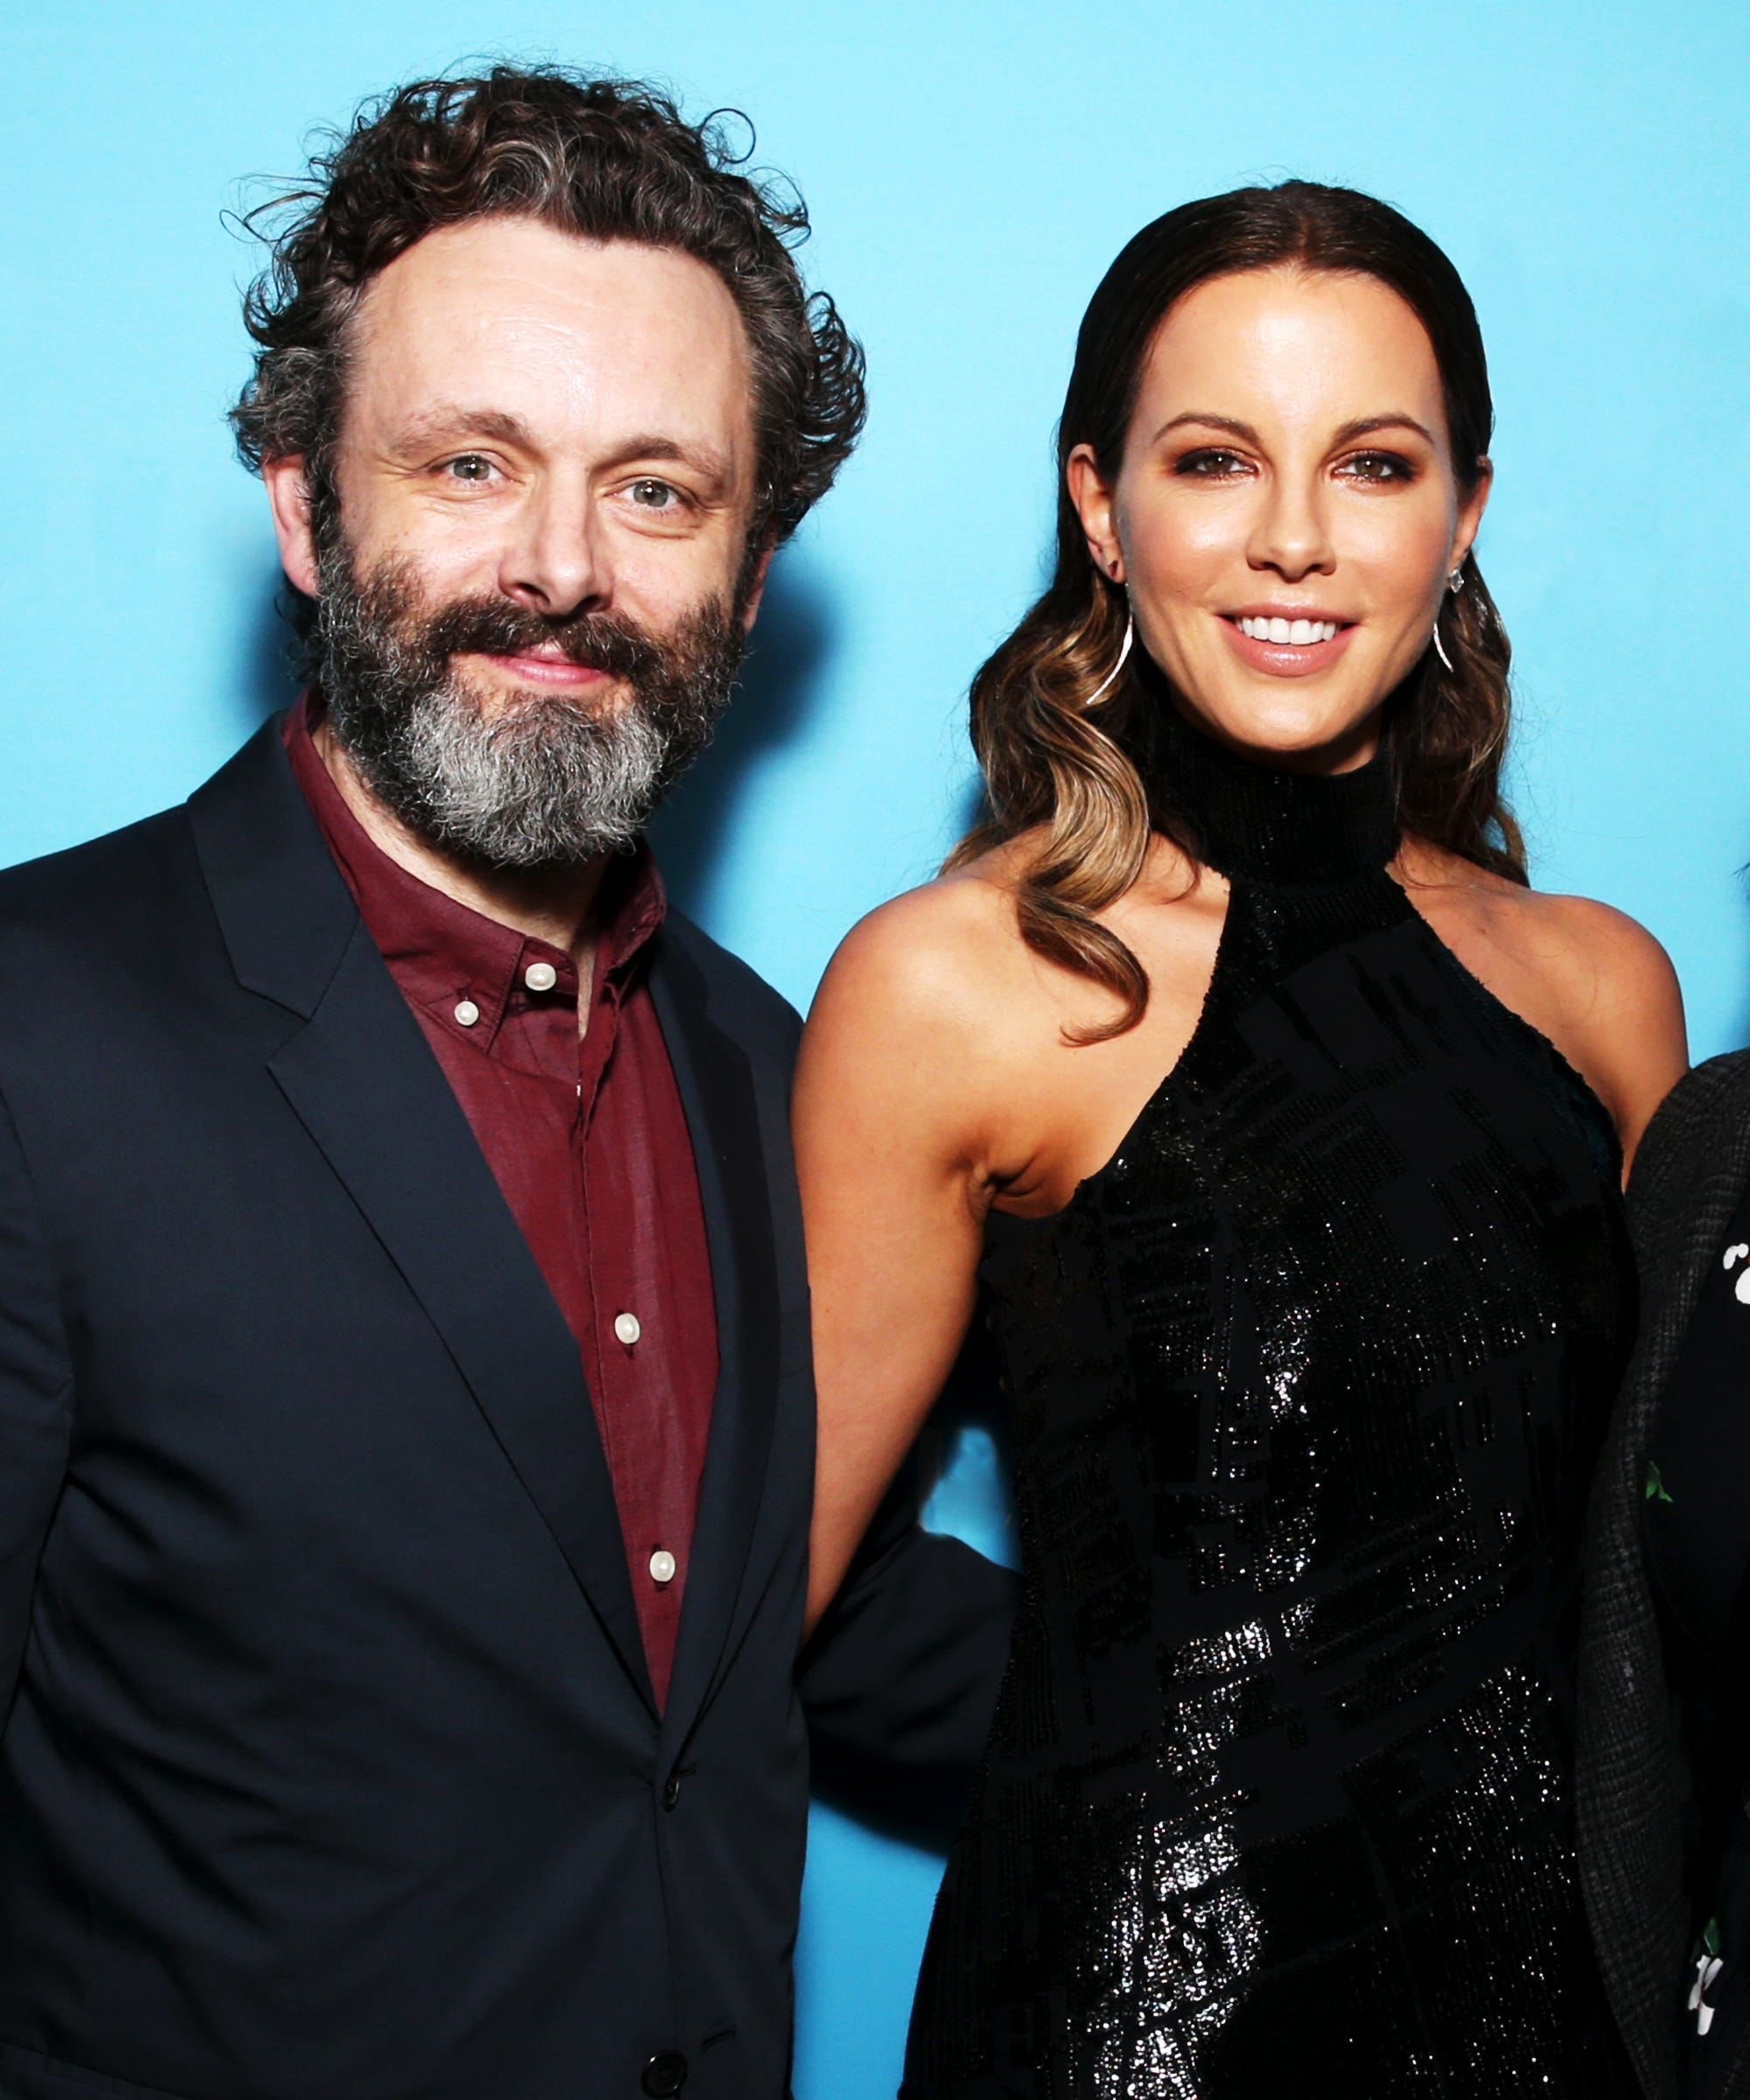 Michael Sheen, Kate Beckinsale's Ex, Expecting Child With 25-Year-Old Girlfriend